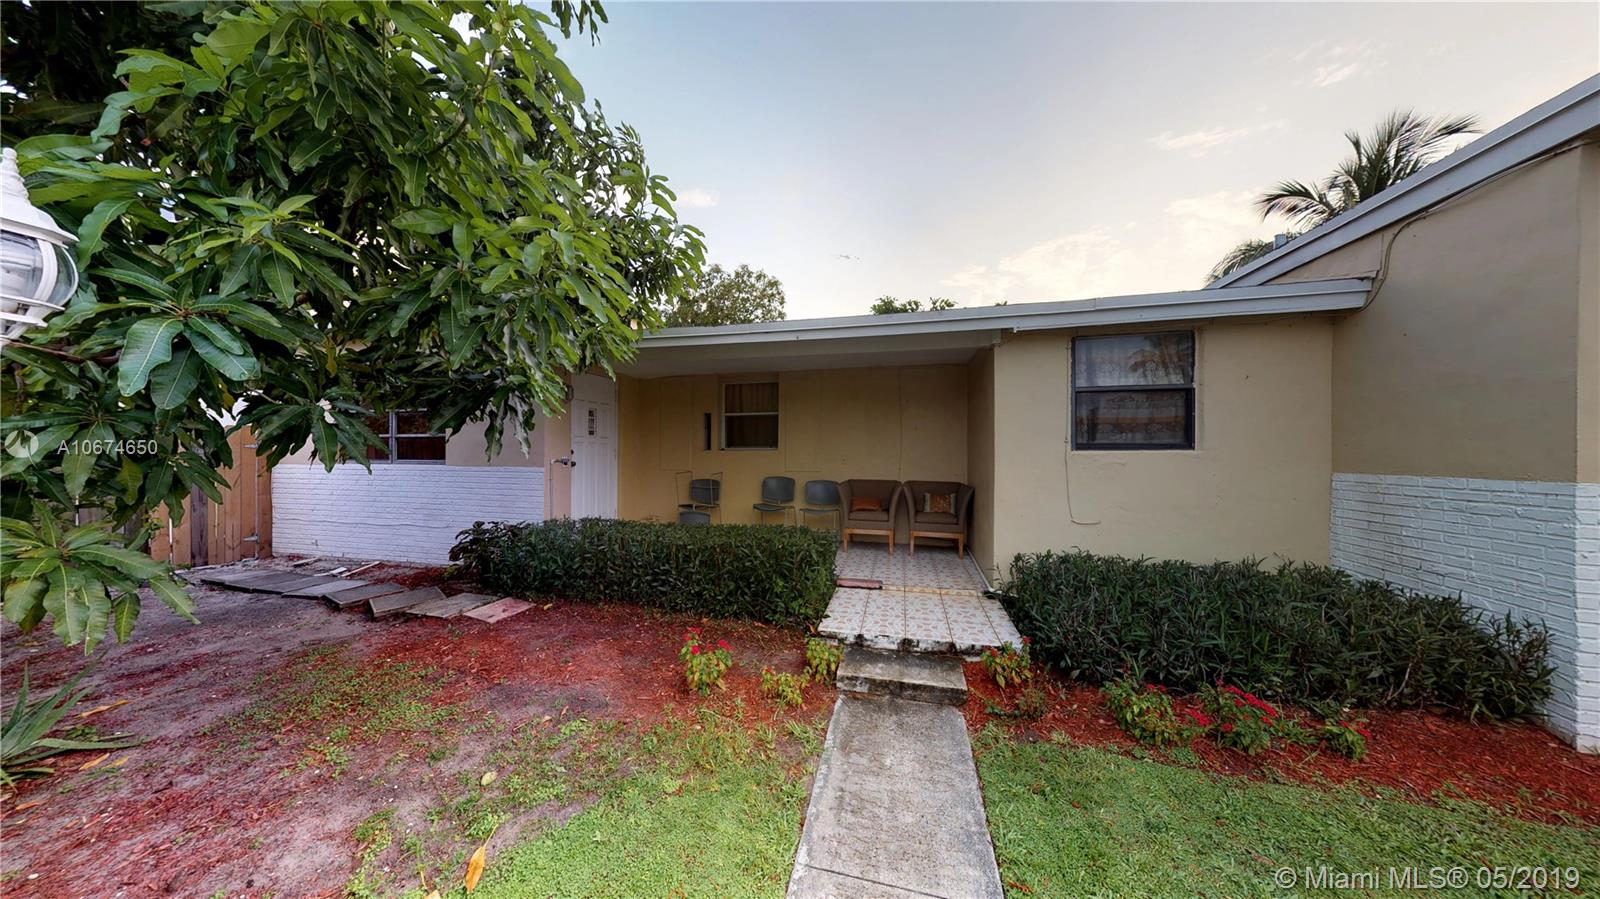 Details for 1490 143rd St, North Miami, FL 33161